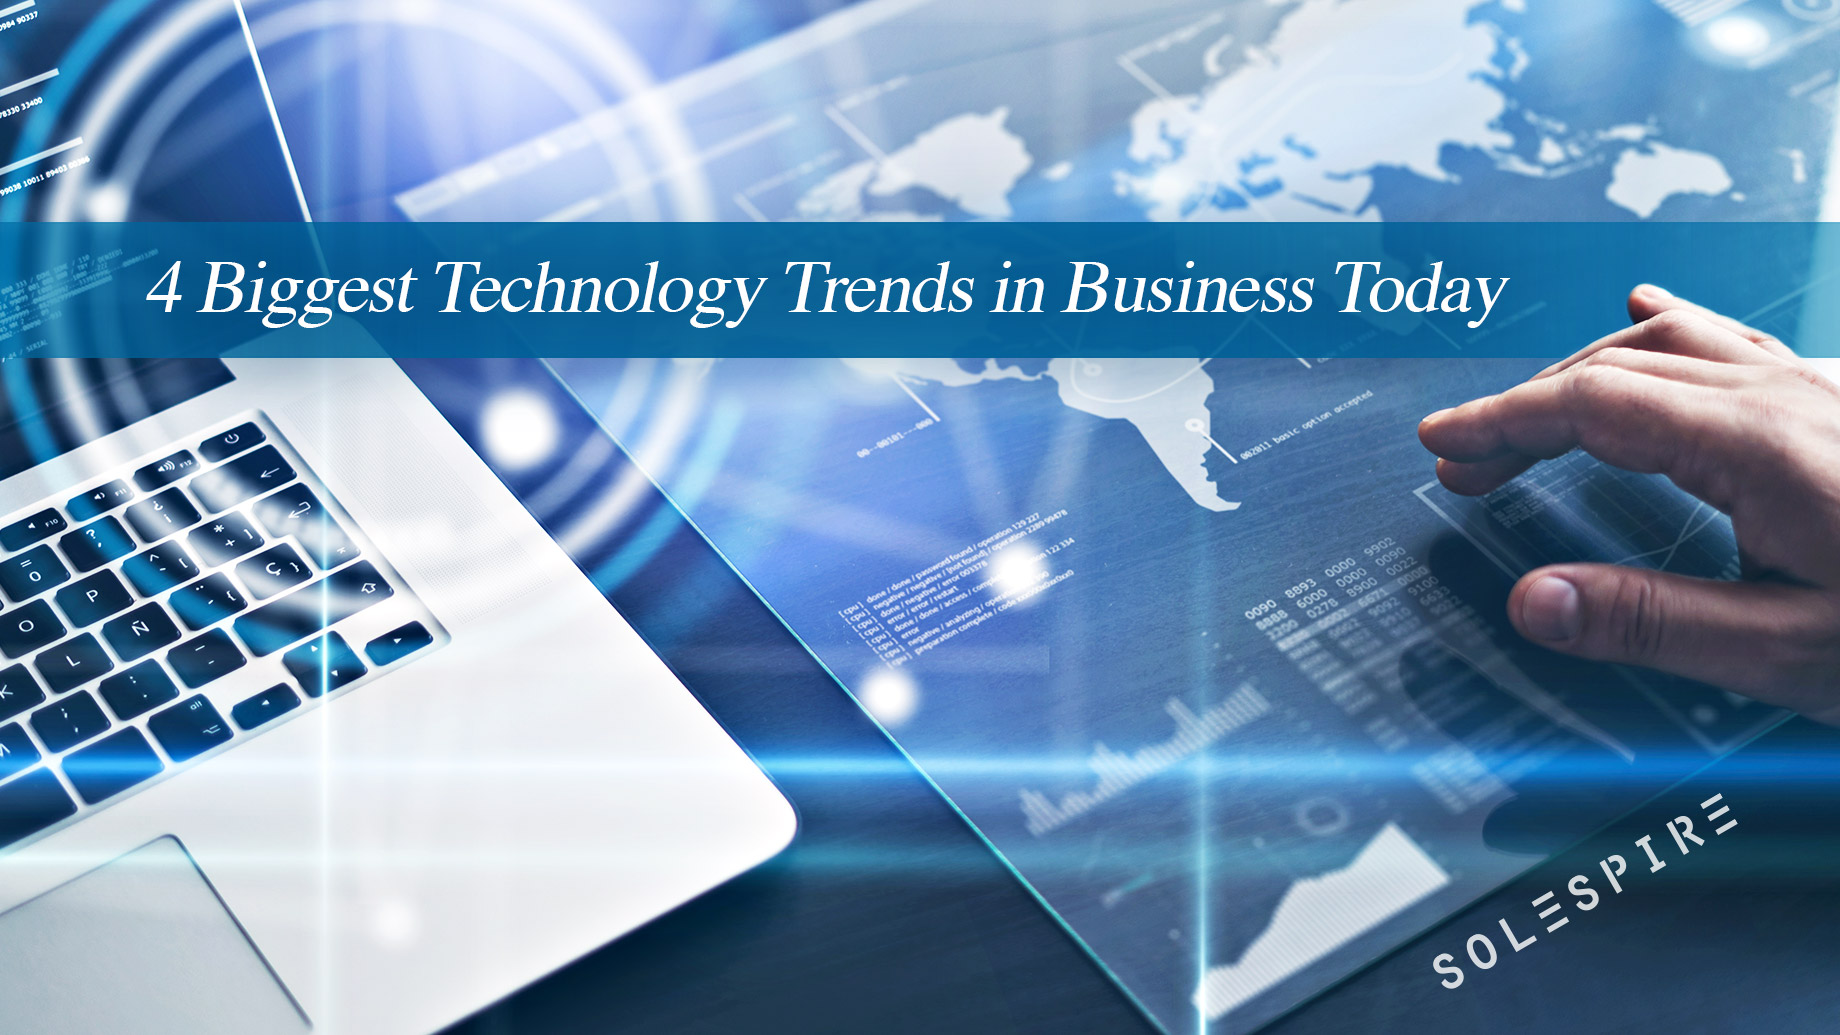 4 Biggest Technology Trends in Business Today